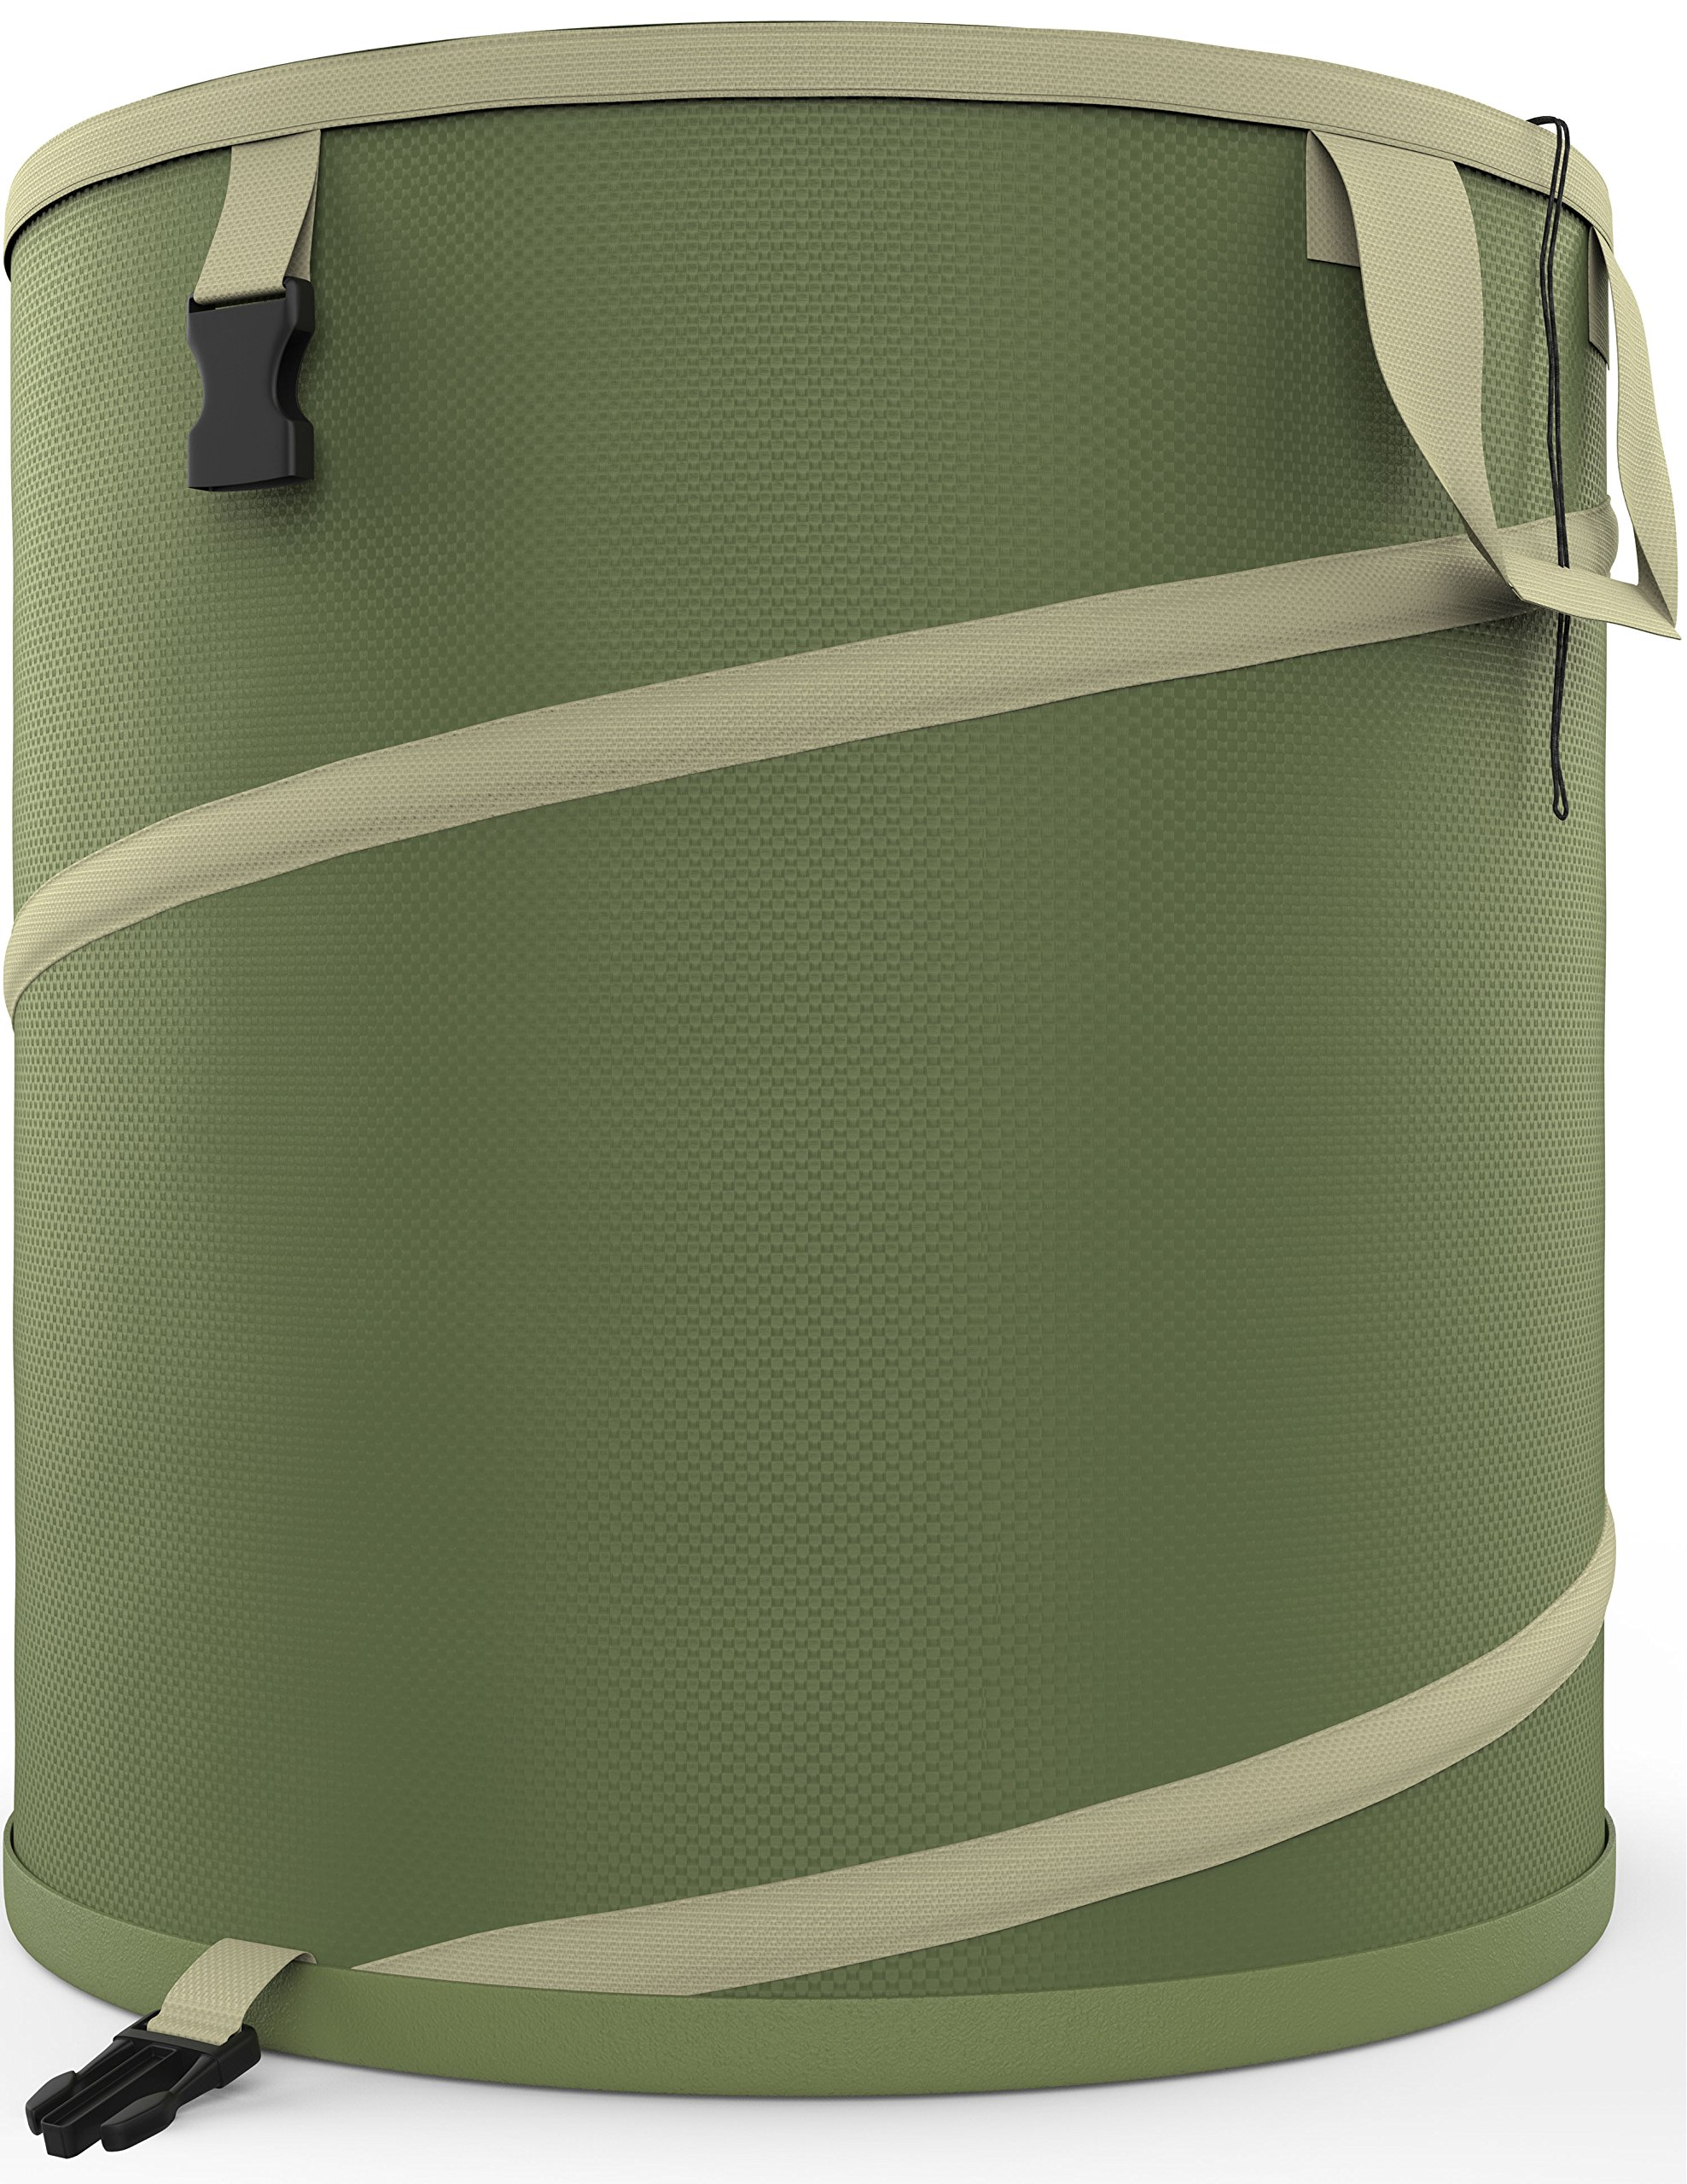 Vremi 30 Gallon Pop Up Garden Bag - Reusable Gardening Lawn and Leaf Bags - Collapsible Canvas Portable Yard Waste Bag with Drawstring Top - Green by Vremi